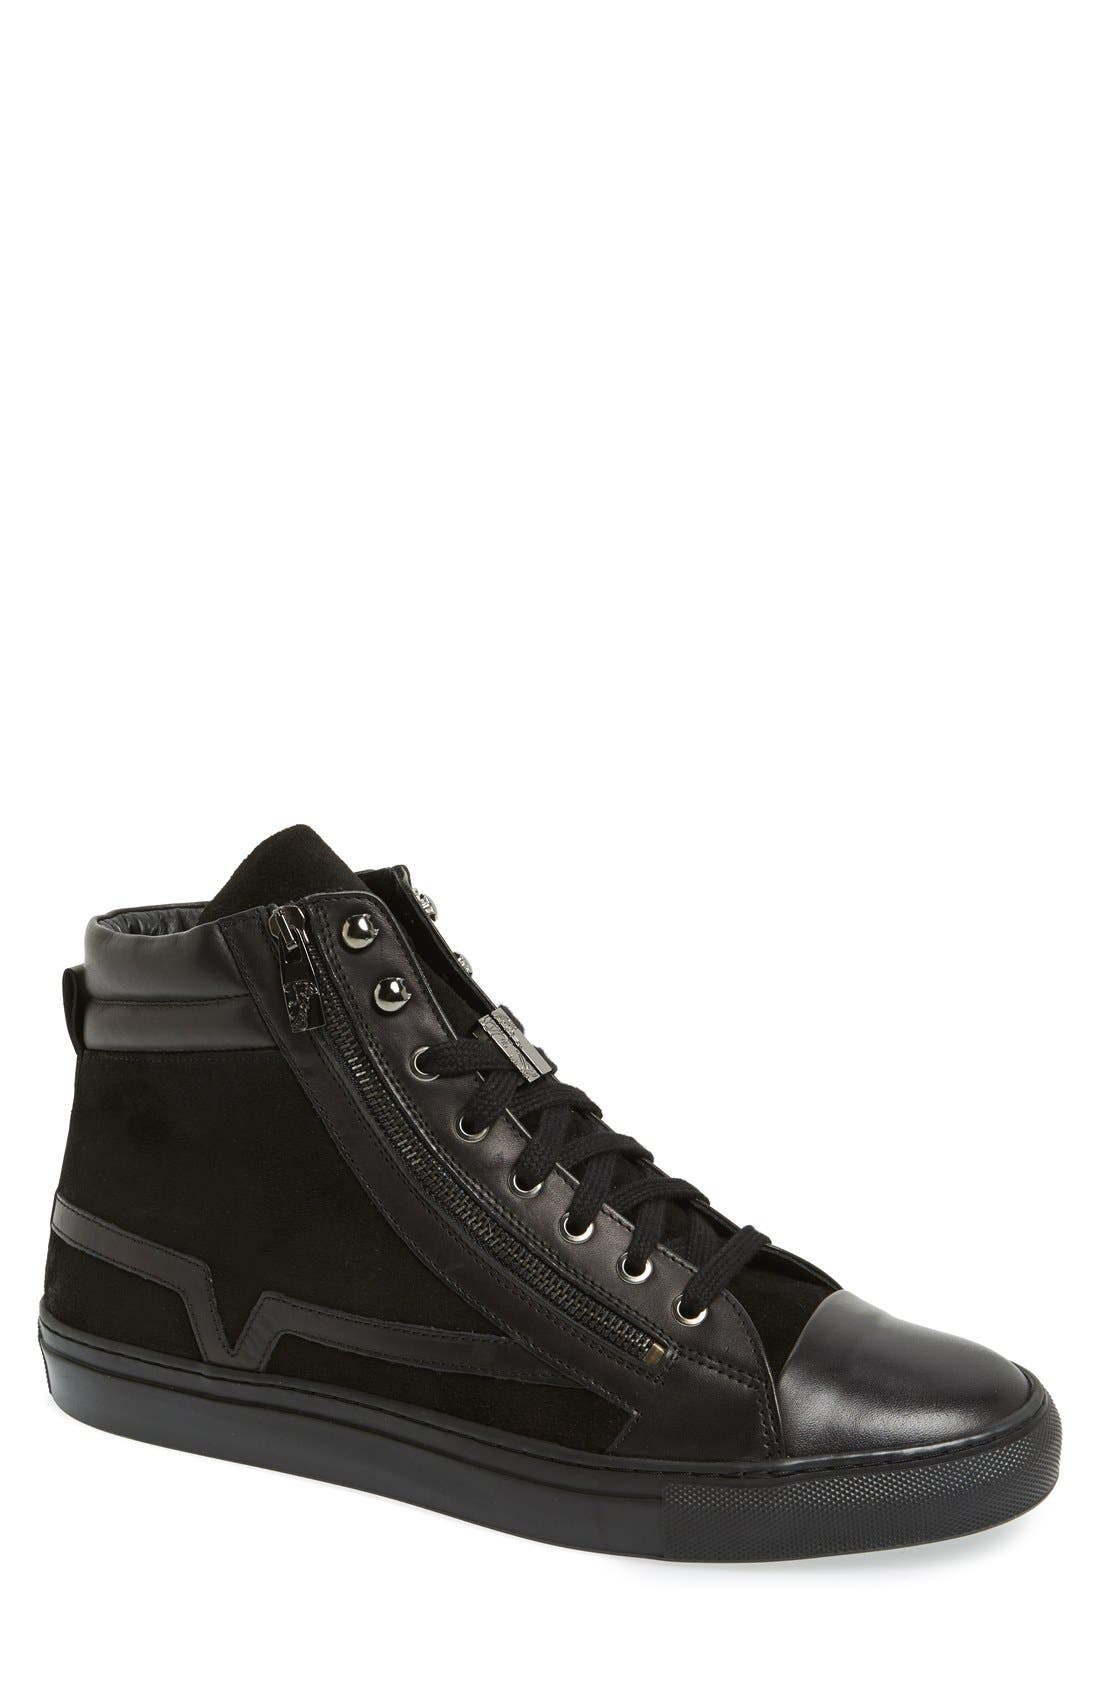 Main Image - Versace Collection Suede & Leather High Top Sneaker (Men)